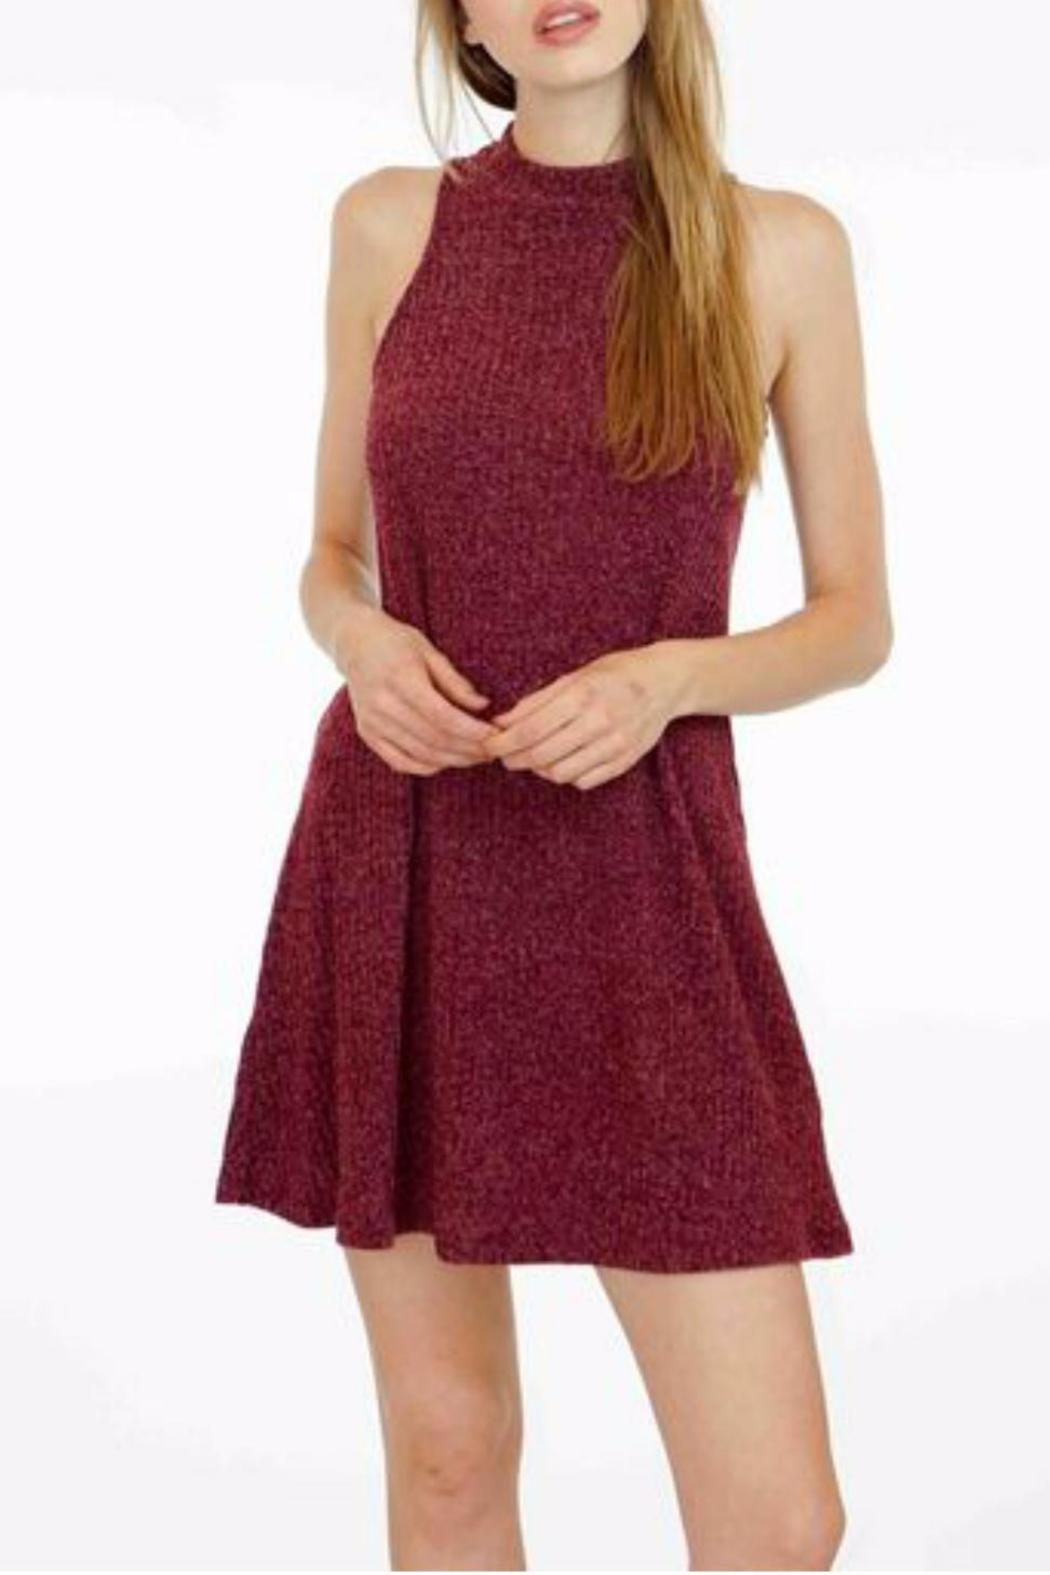 Veronica M High Neck Ribbed Sweater Dress - Main Image